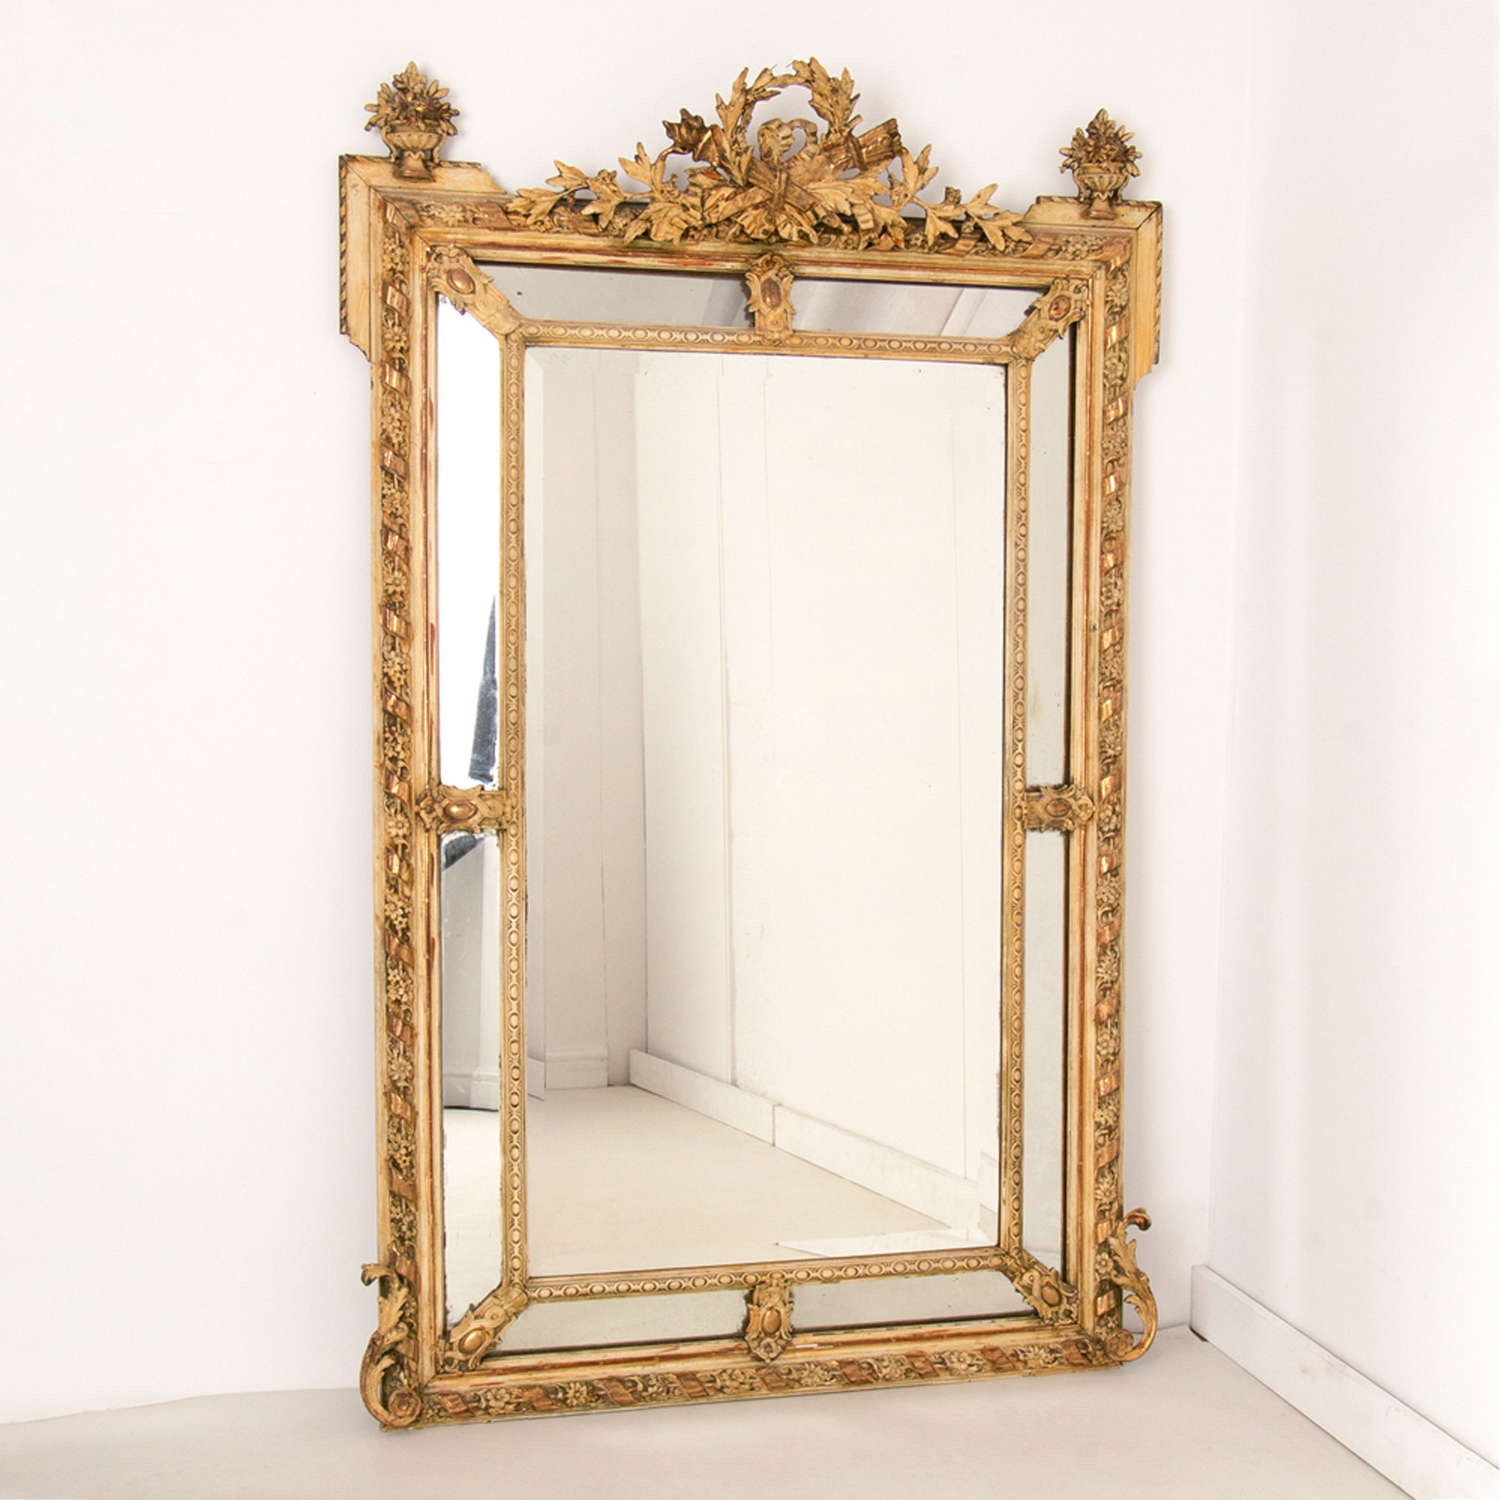 A French antique crested margin mirror in original parcel-gilt